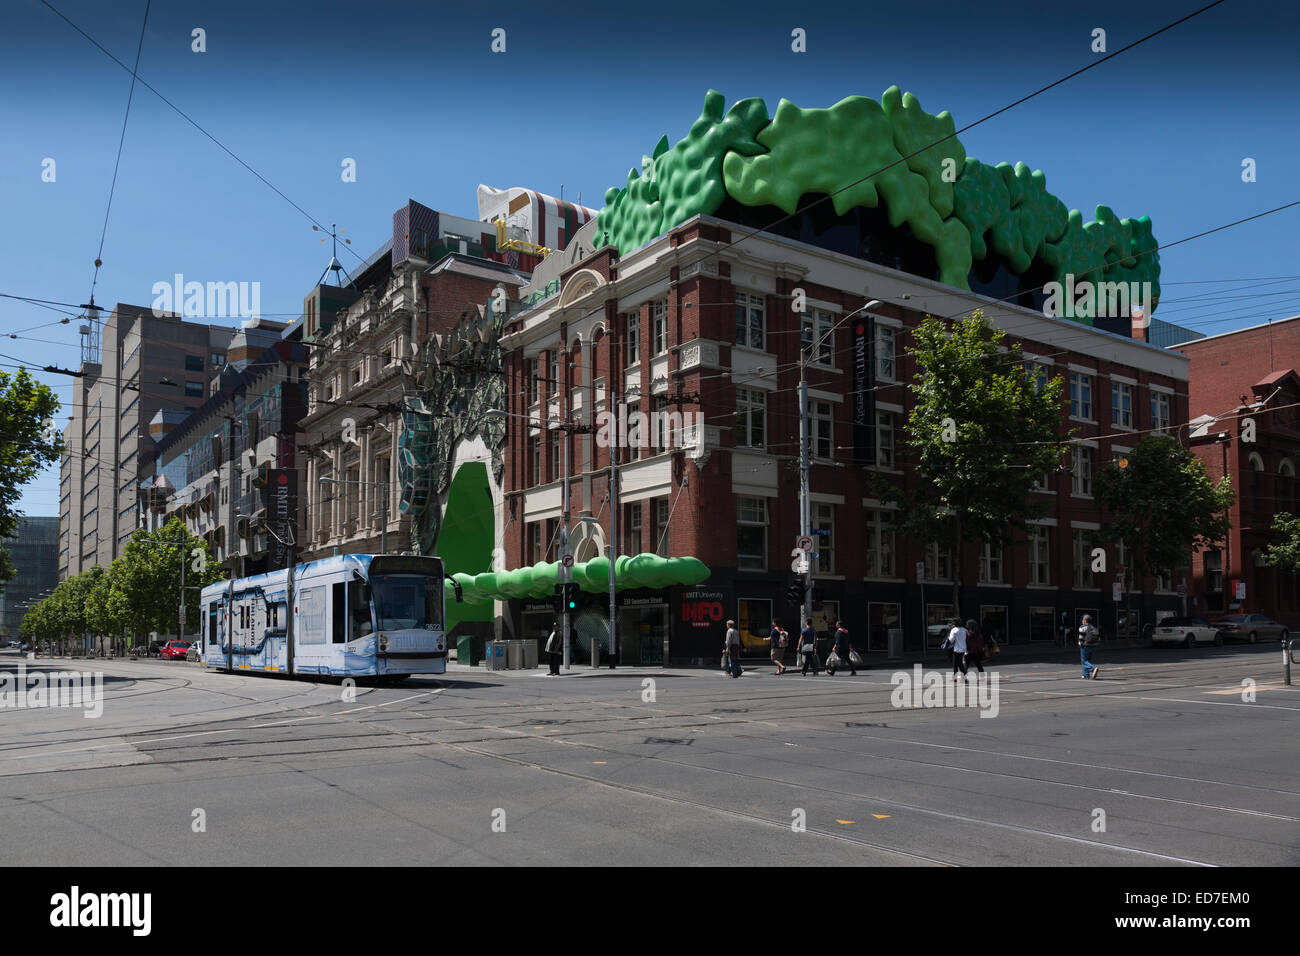 how to stop a tram in melbourne